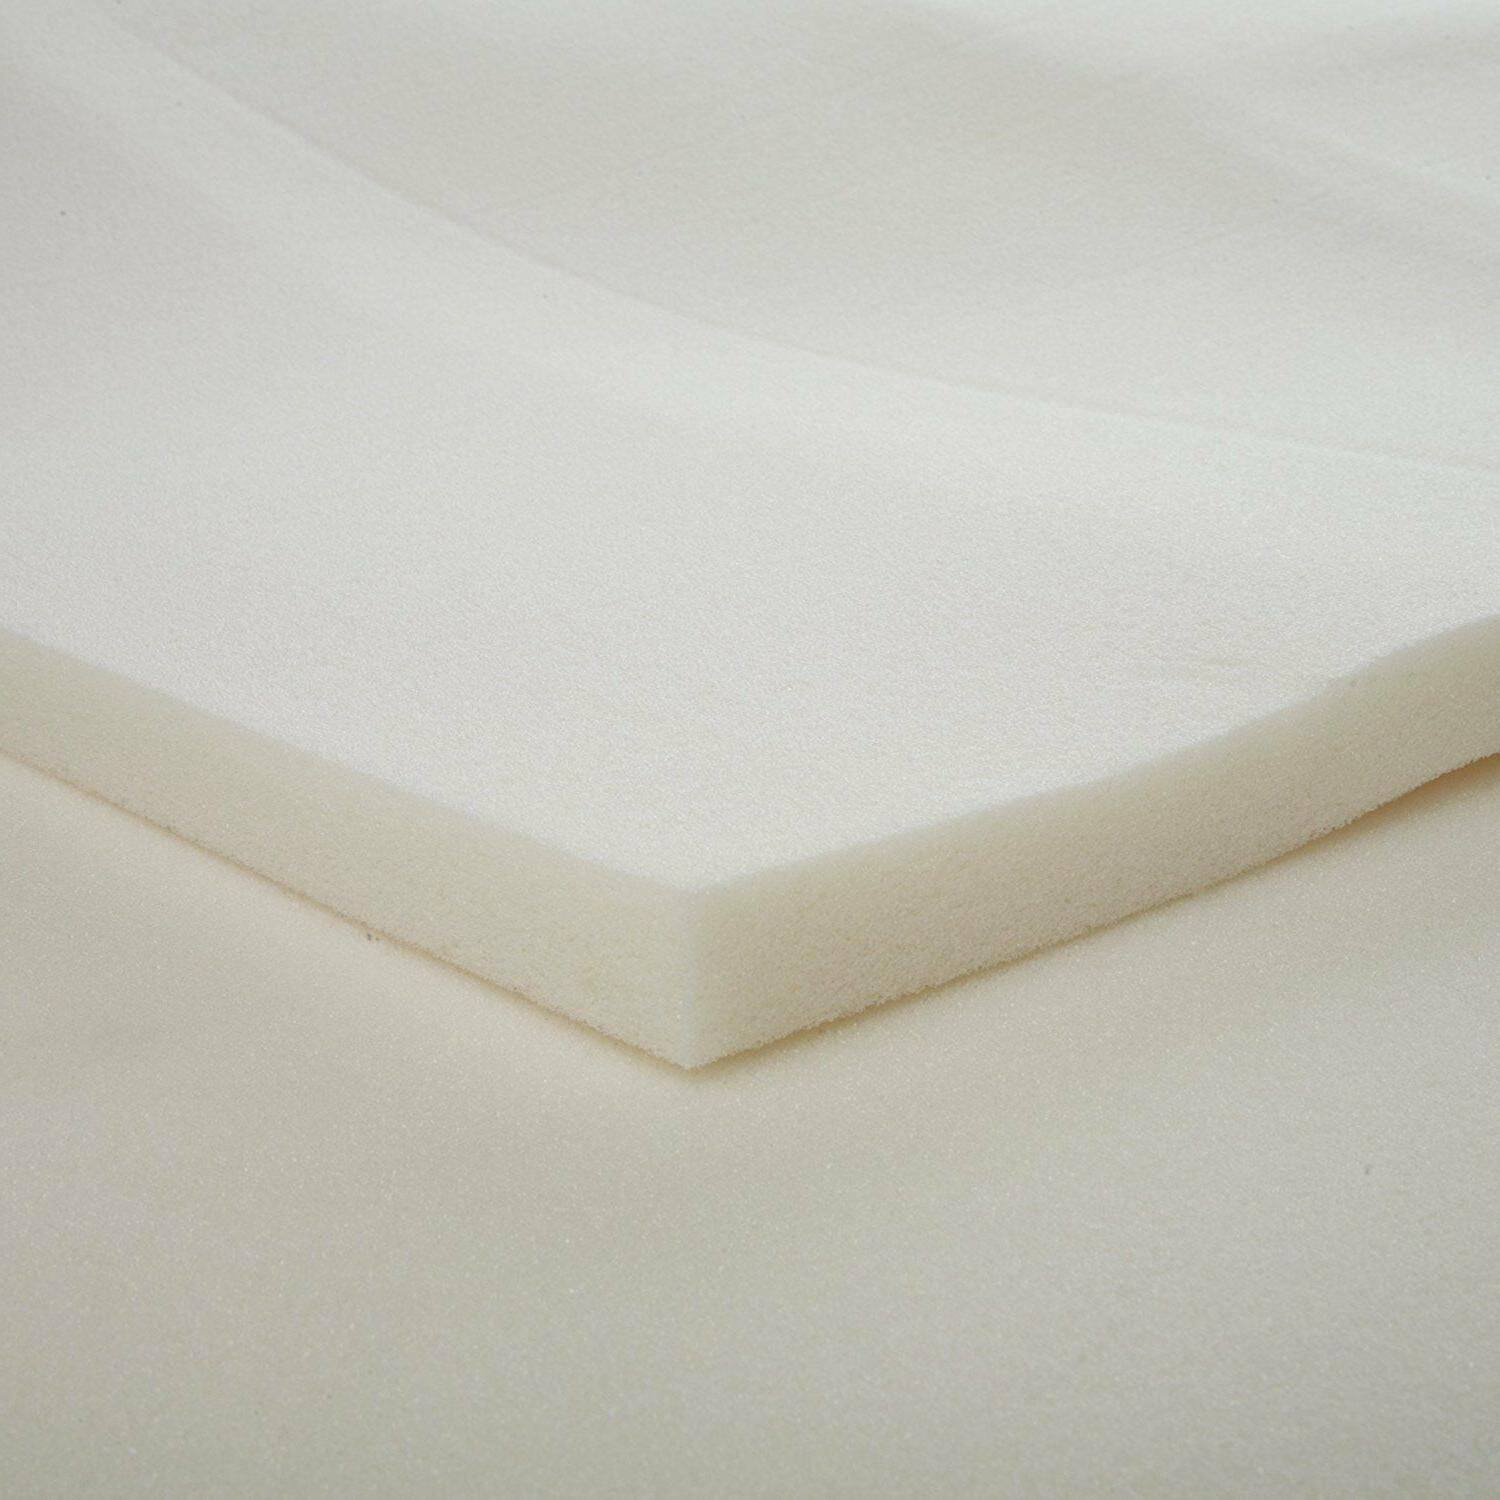 Carpenter XL Inch Thick Mattress